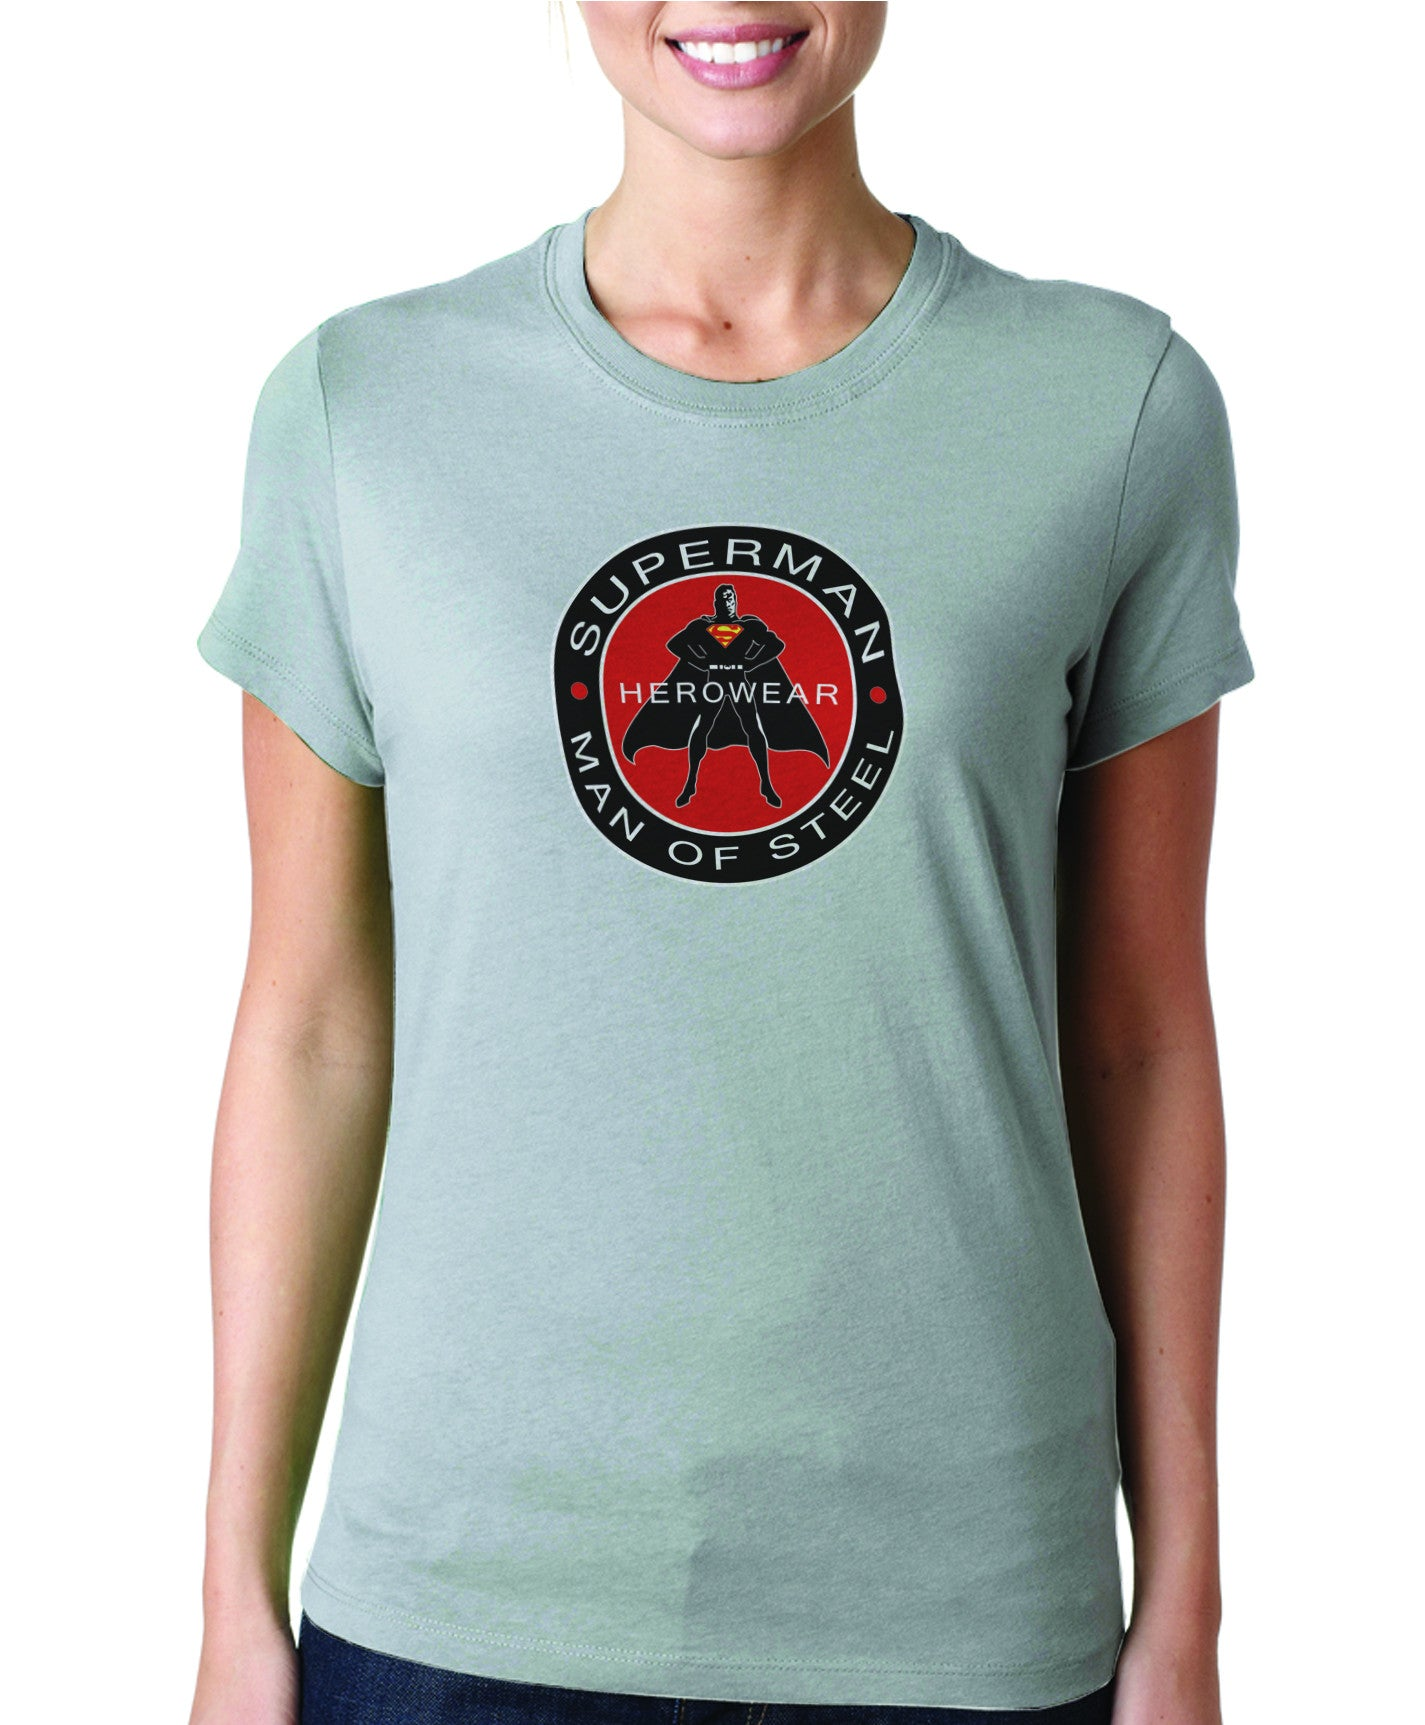 Superman Herowear Round Logo on Ash Gray Fitted Tshirt for Women -  TshirtNow.net - ef037bd9d